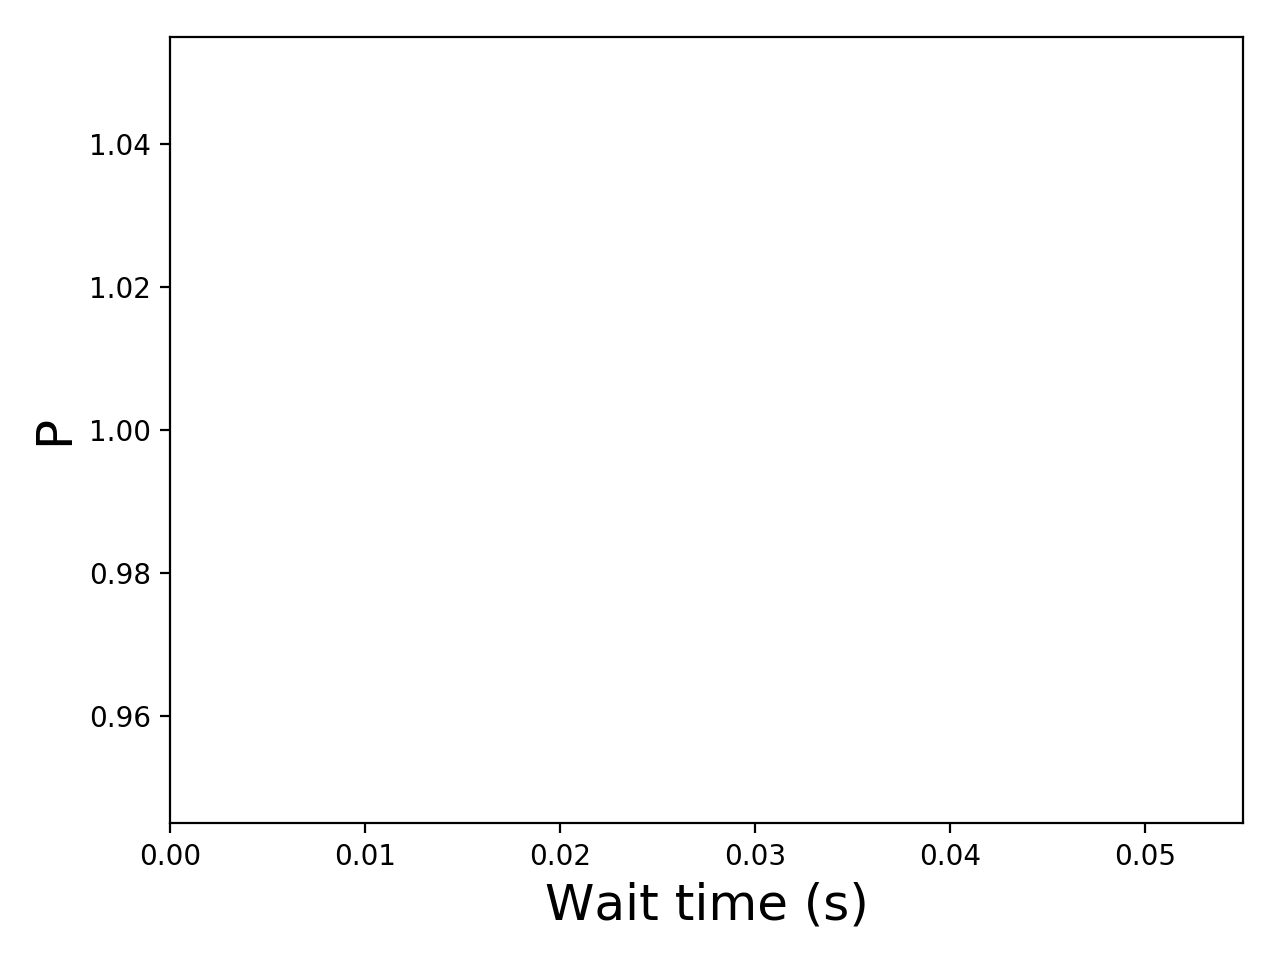 Task wait time CDF graph for the askalon-new_ee25 trace.